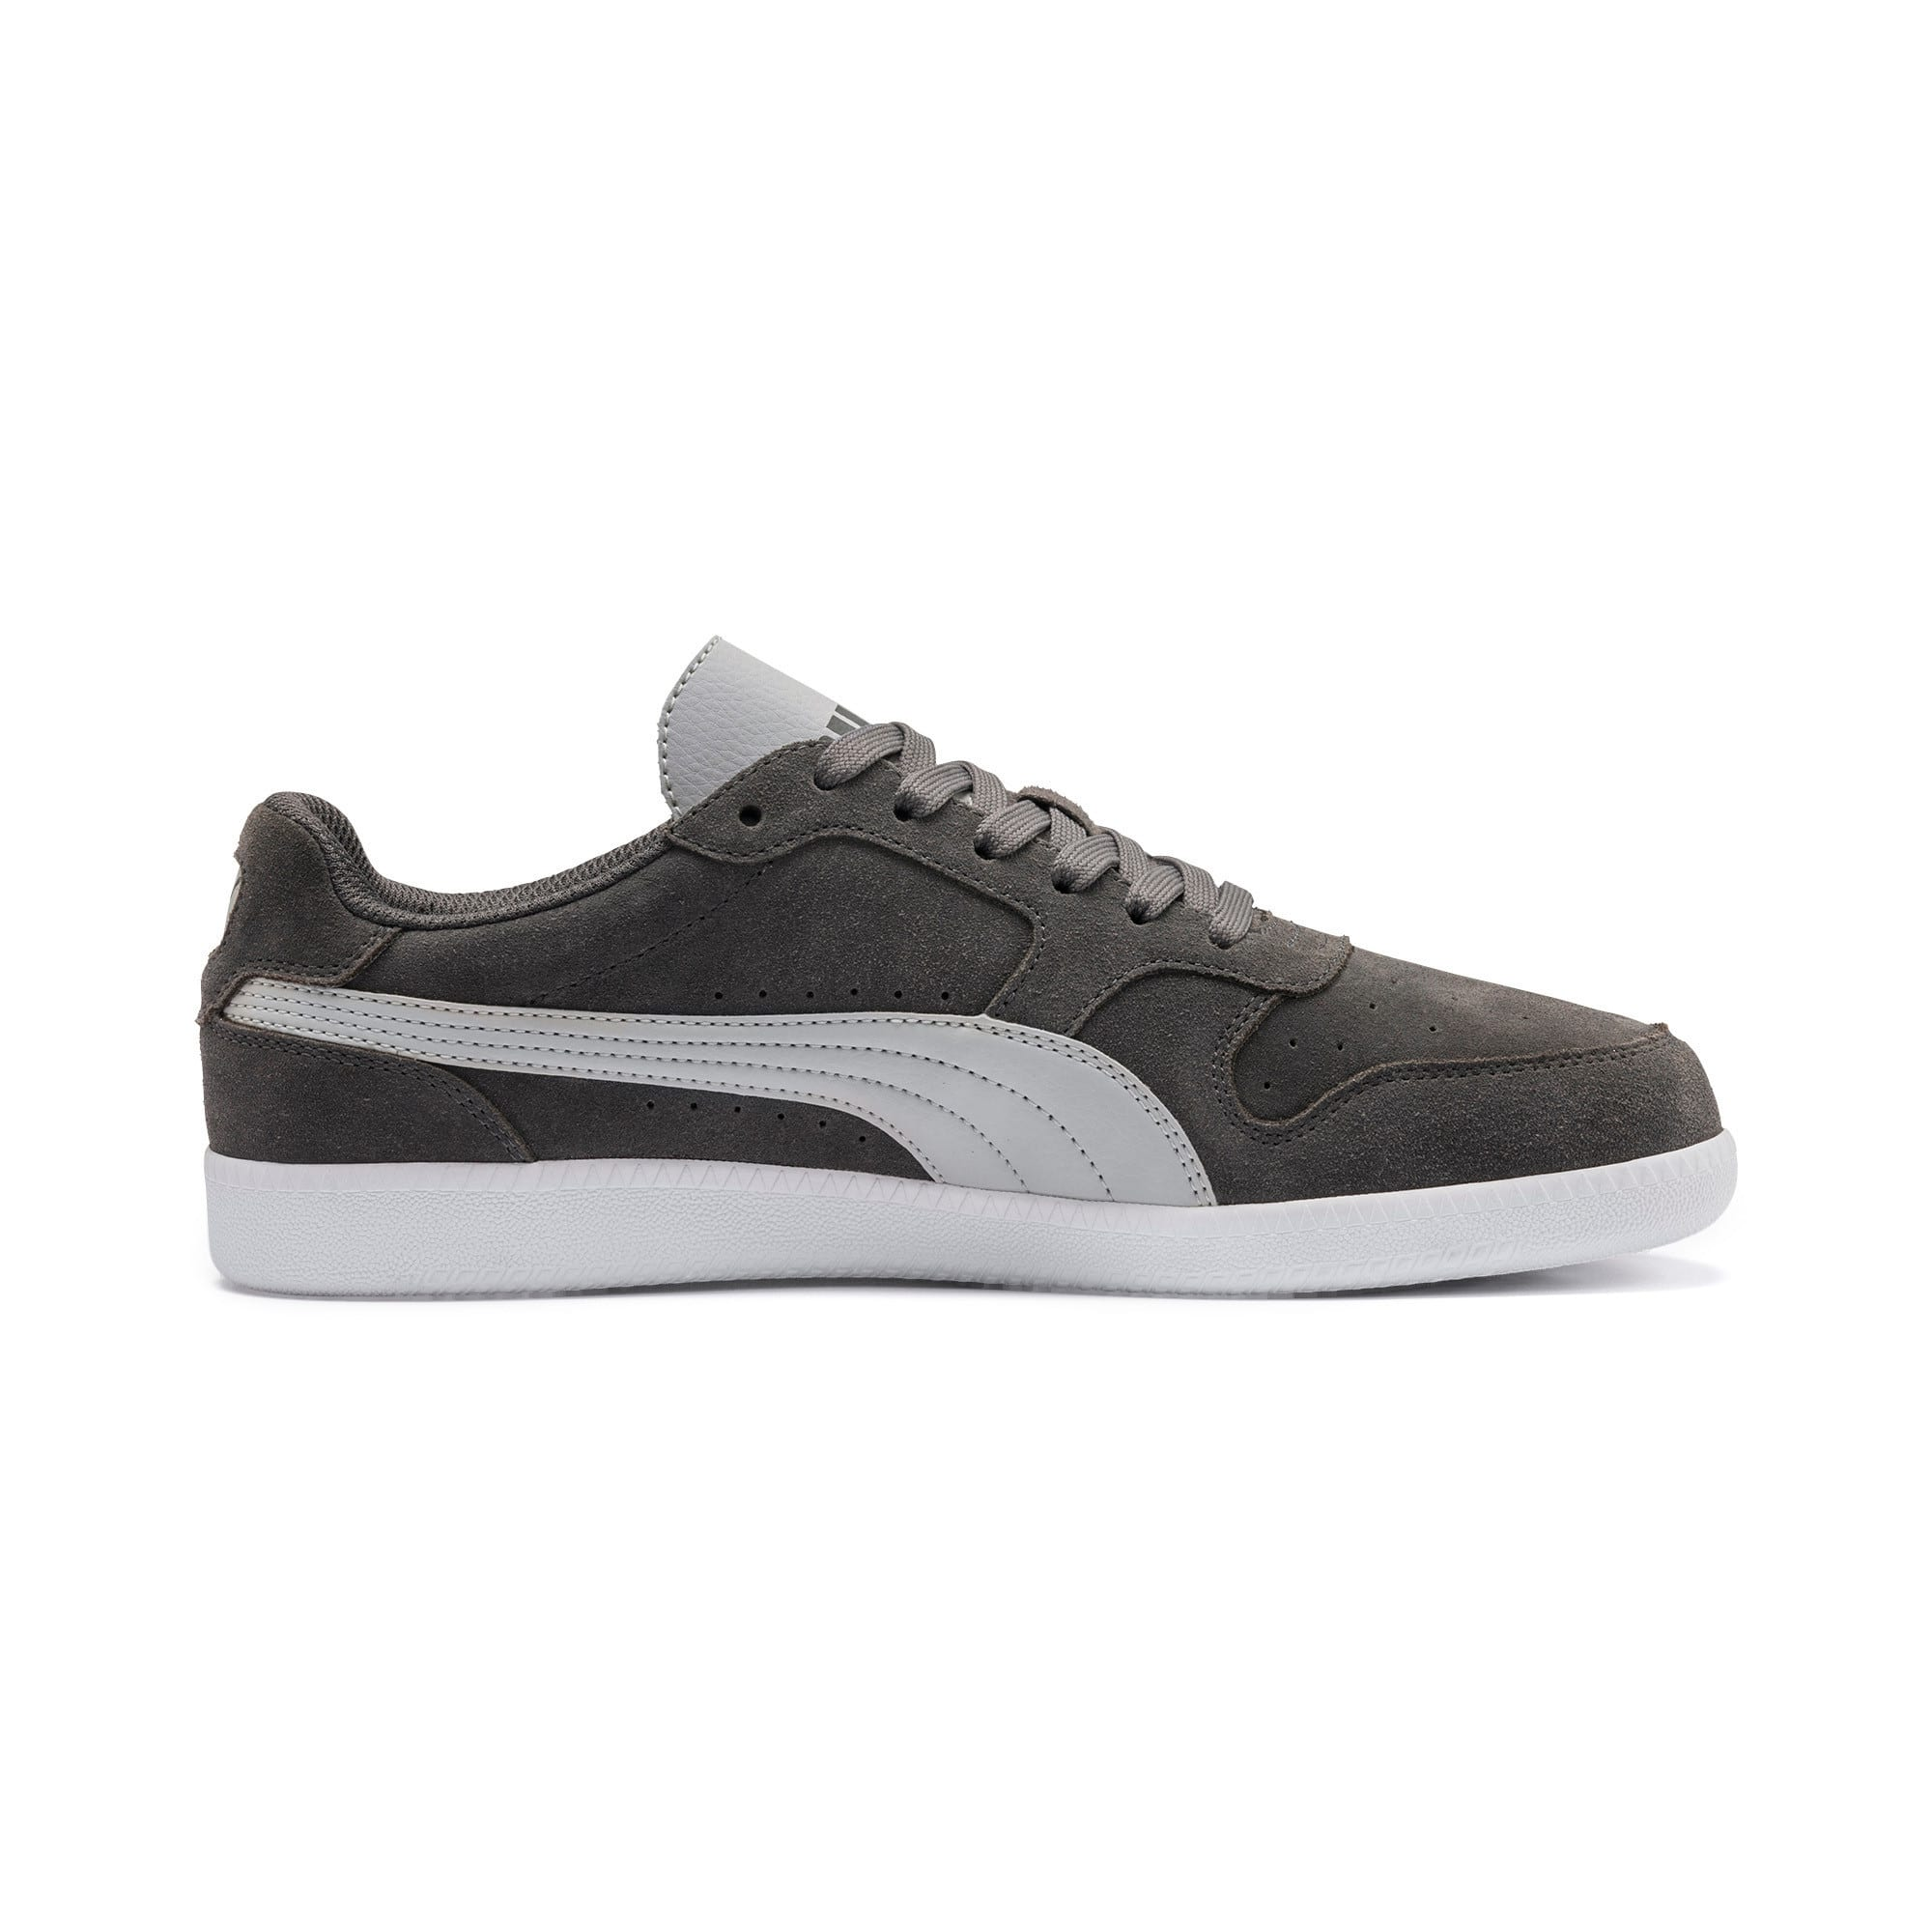 Thumbnail 4 of Icra Suede Trainers, CASTLEROCK-High Rise-White, medium-IND